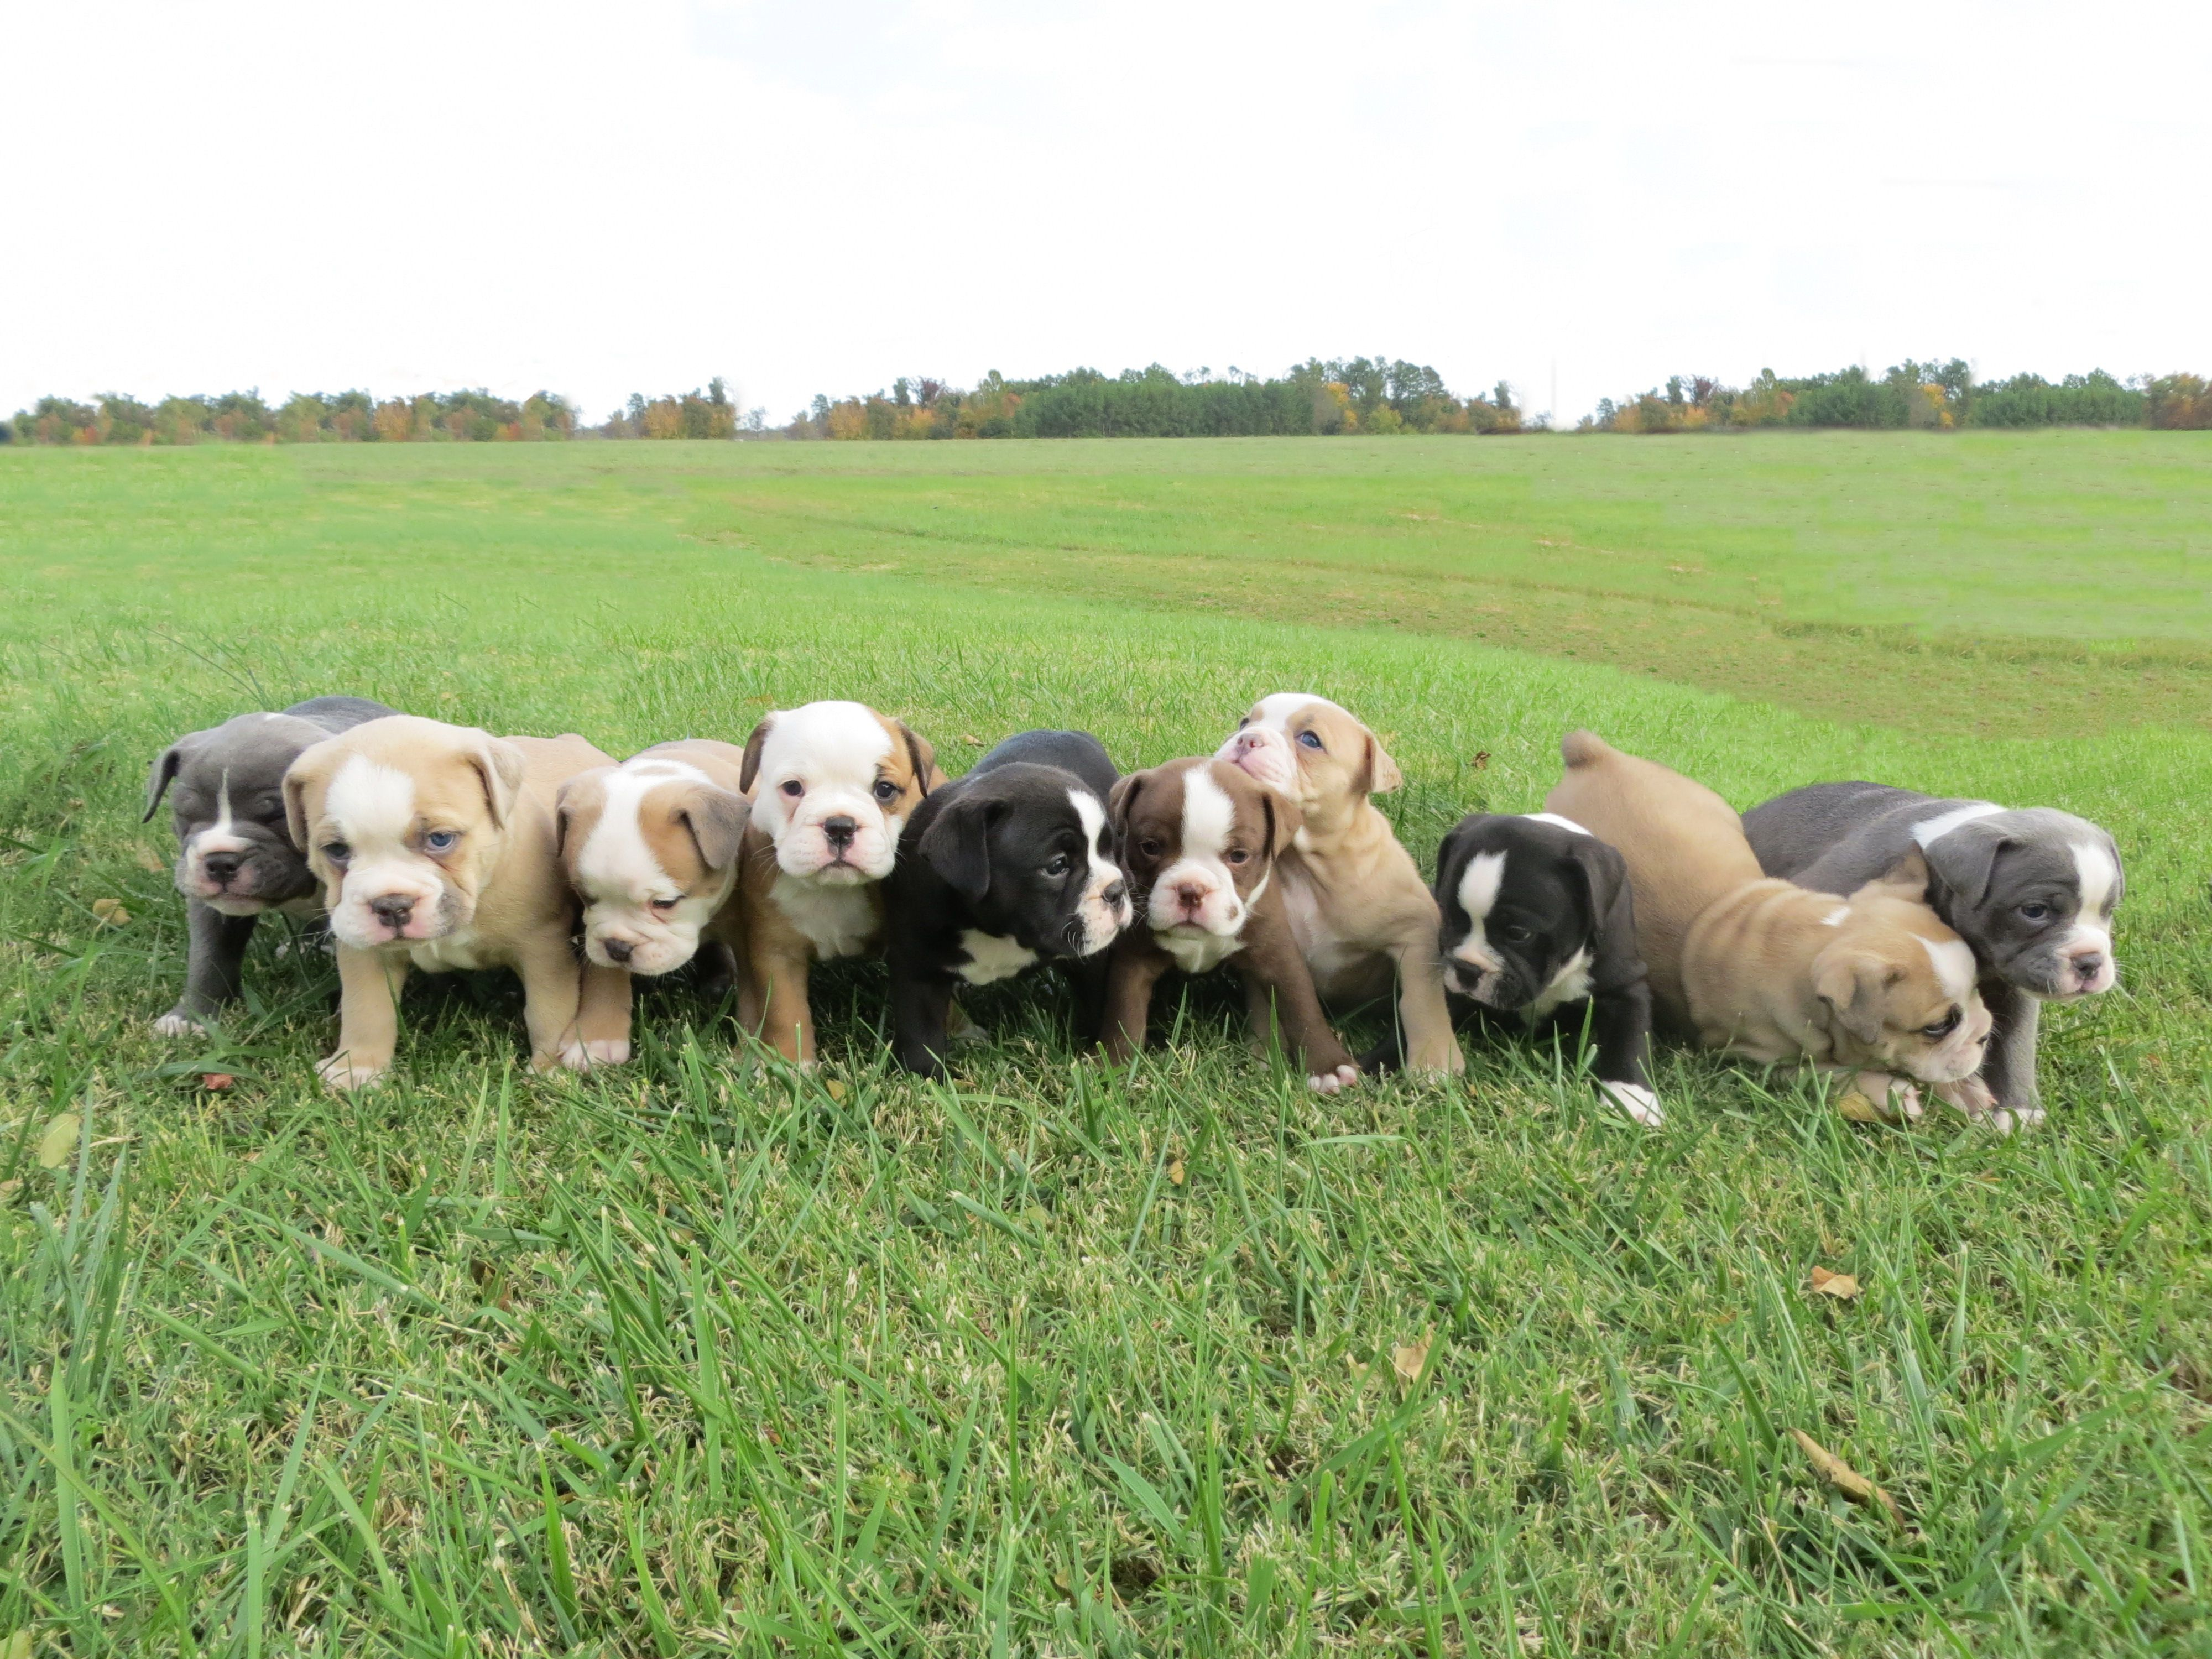 Olde English Bulldogge puppies for sale....so cute :)